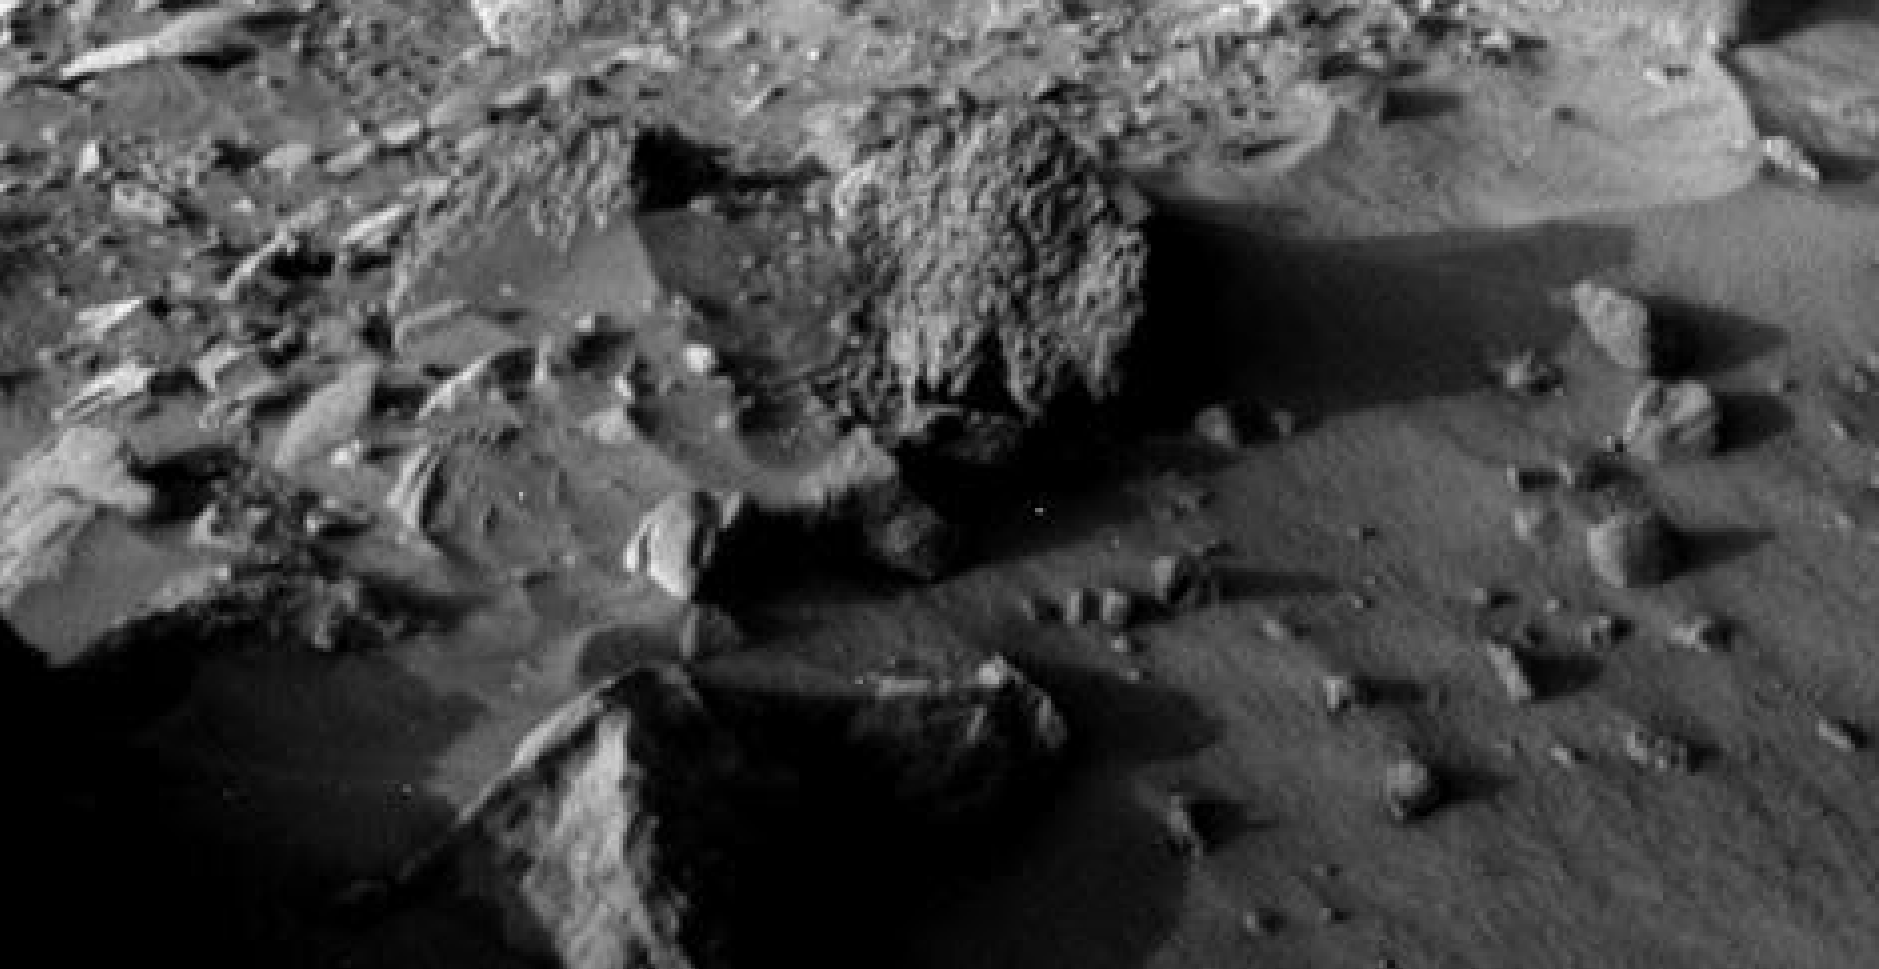 mars sol 1405 anomaly artifacts 17 was life on mars